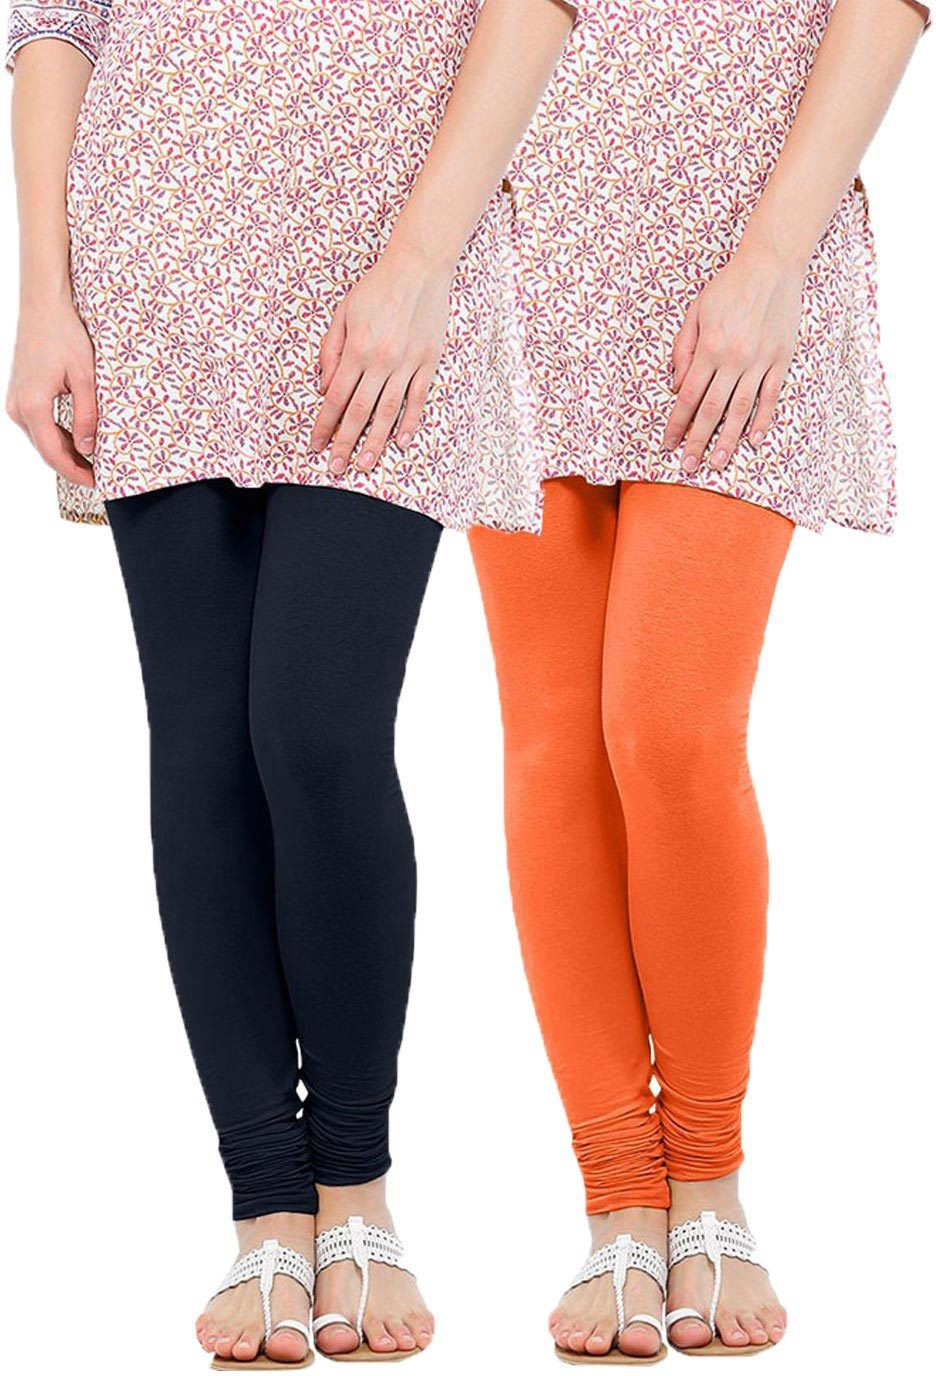 Linking Threads Womens Dark Blue, Orange Leggings(Pack of 2)